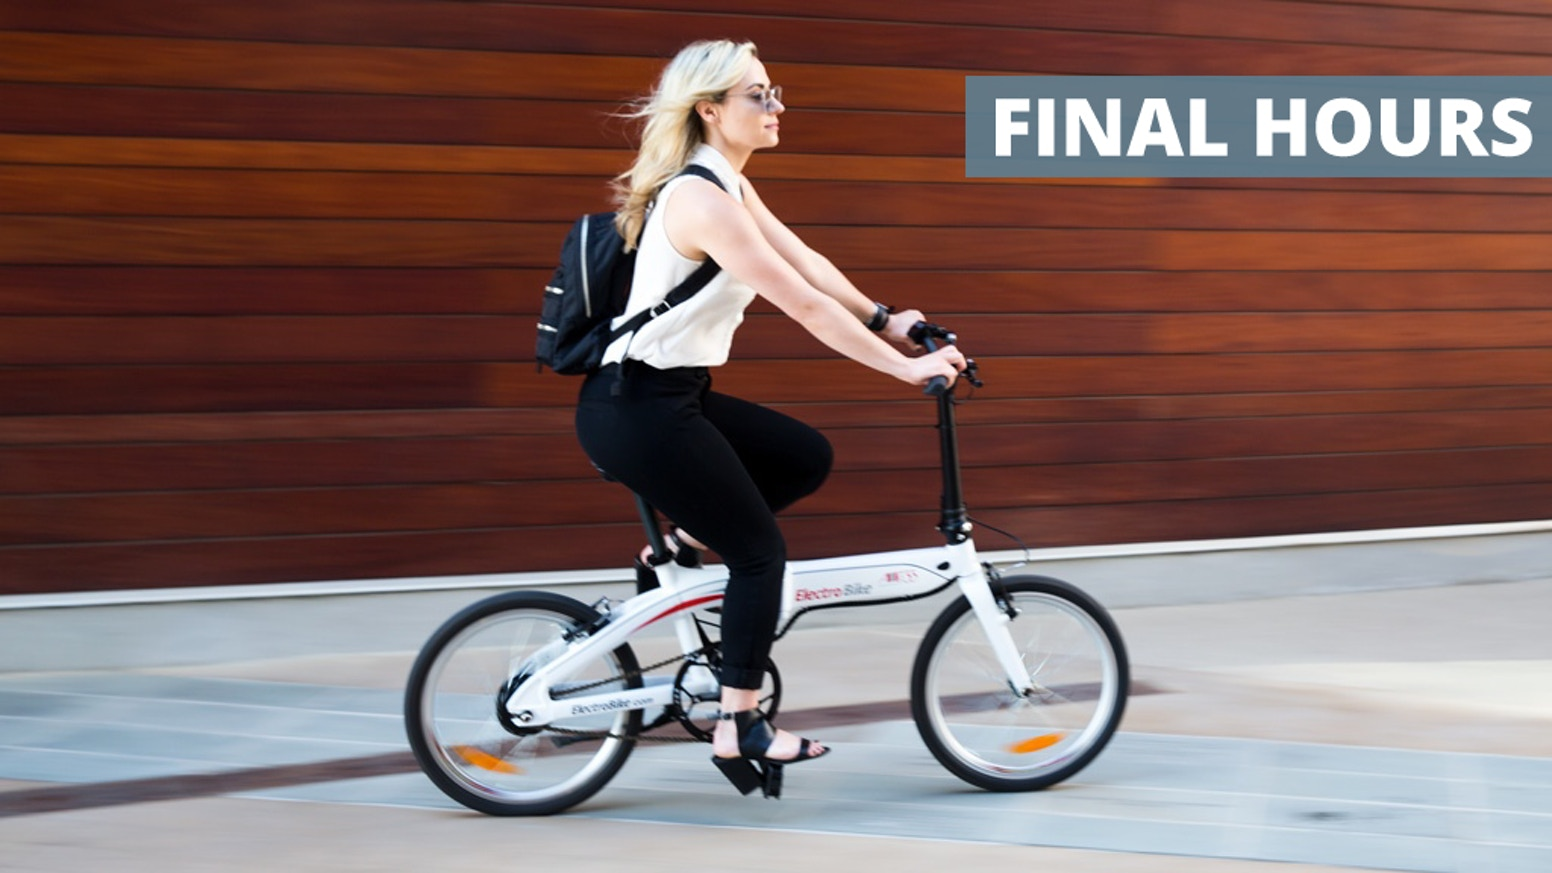 The coolest and most convenient Folding Electric Bike. www.electrobike.com